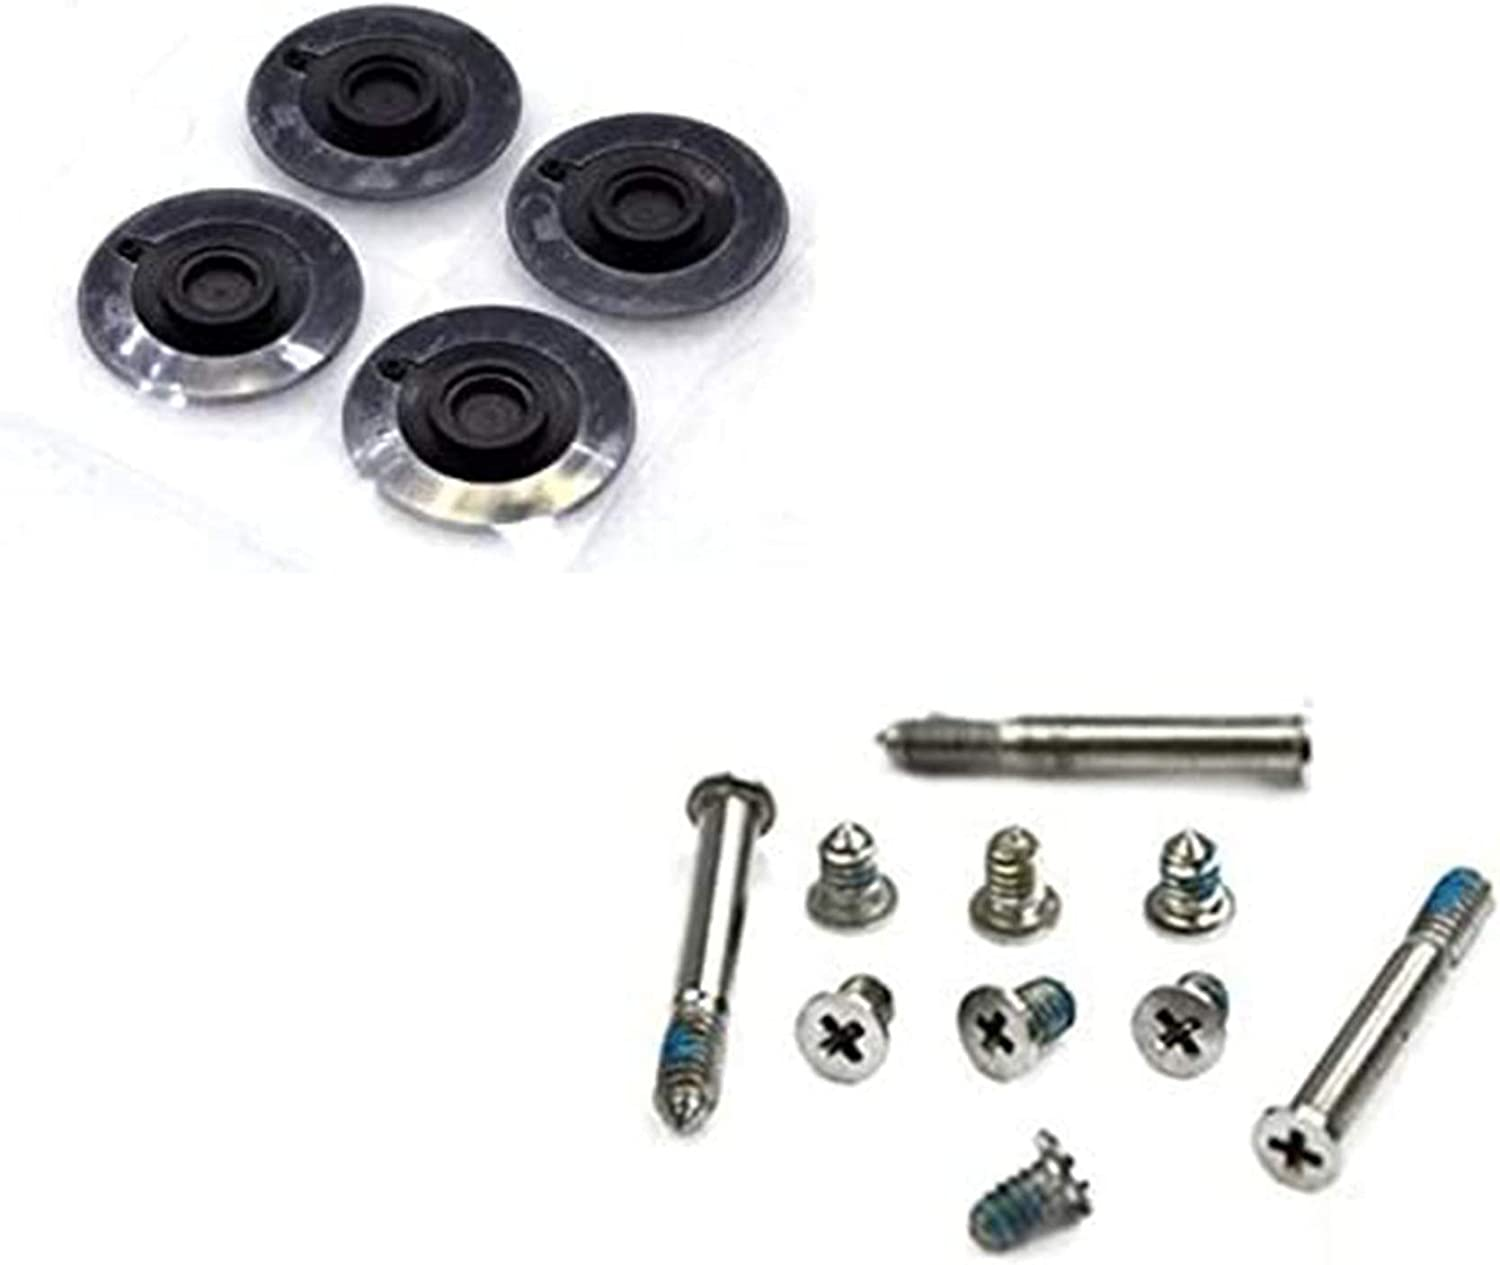 """Flywings Repair Replacement Screws for Unibody Apple Macbook Pro A1278 A1286 13"""" 15"""" 17"""" 1 Sets of 10, 4 x Rubber Case Foot Feet for Macbook Pro A1278 A1286 A1297 2009 2010"""